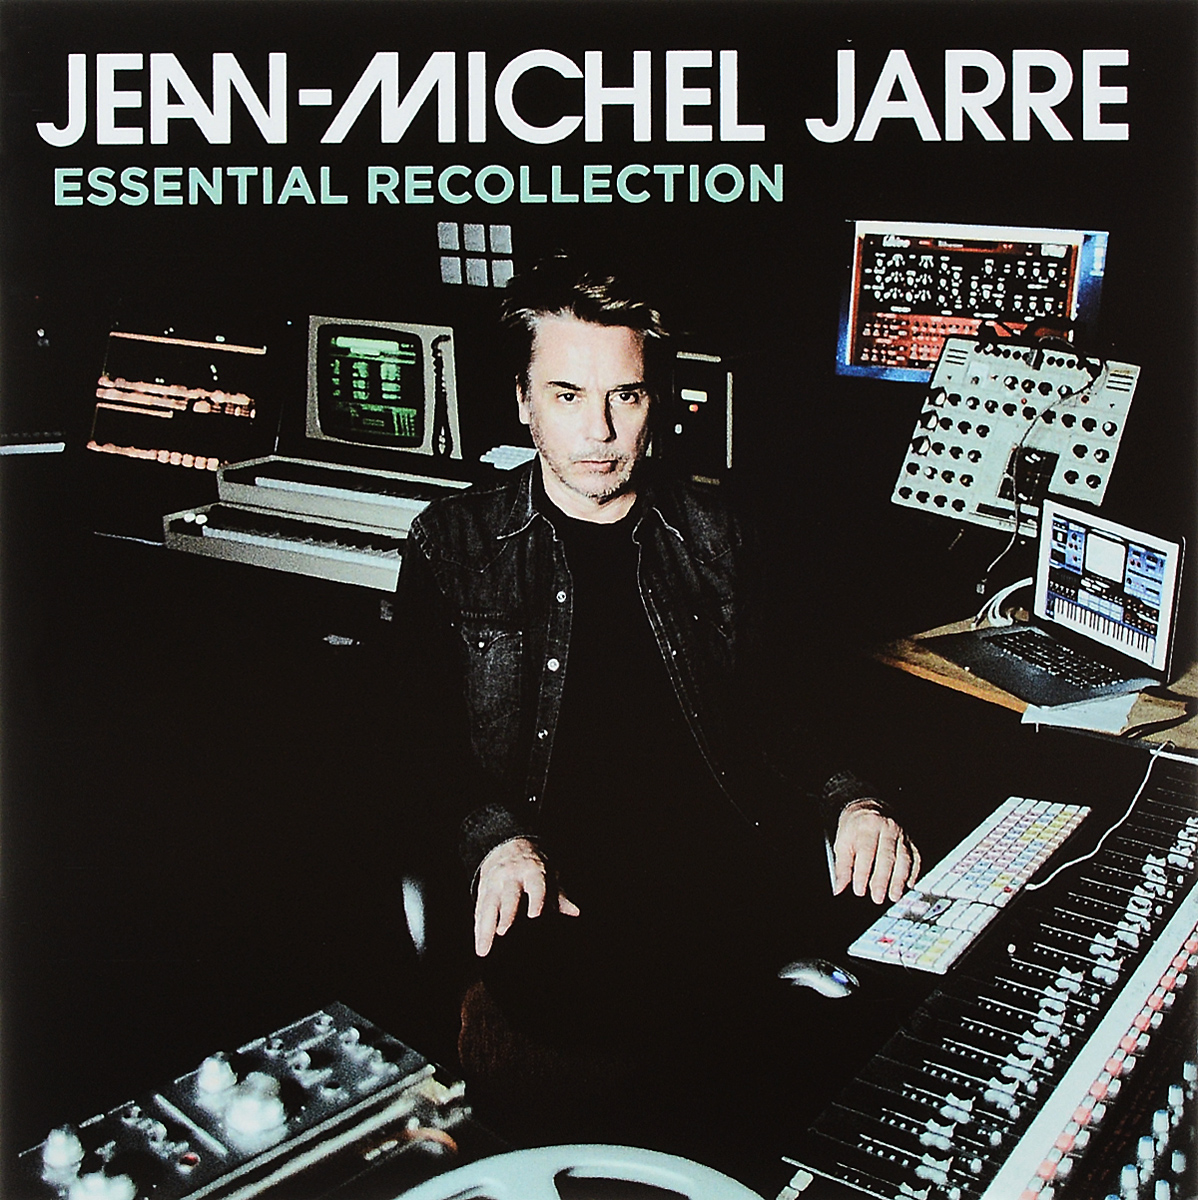 Jean-Michel Jarre. Essential Recollection